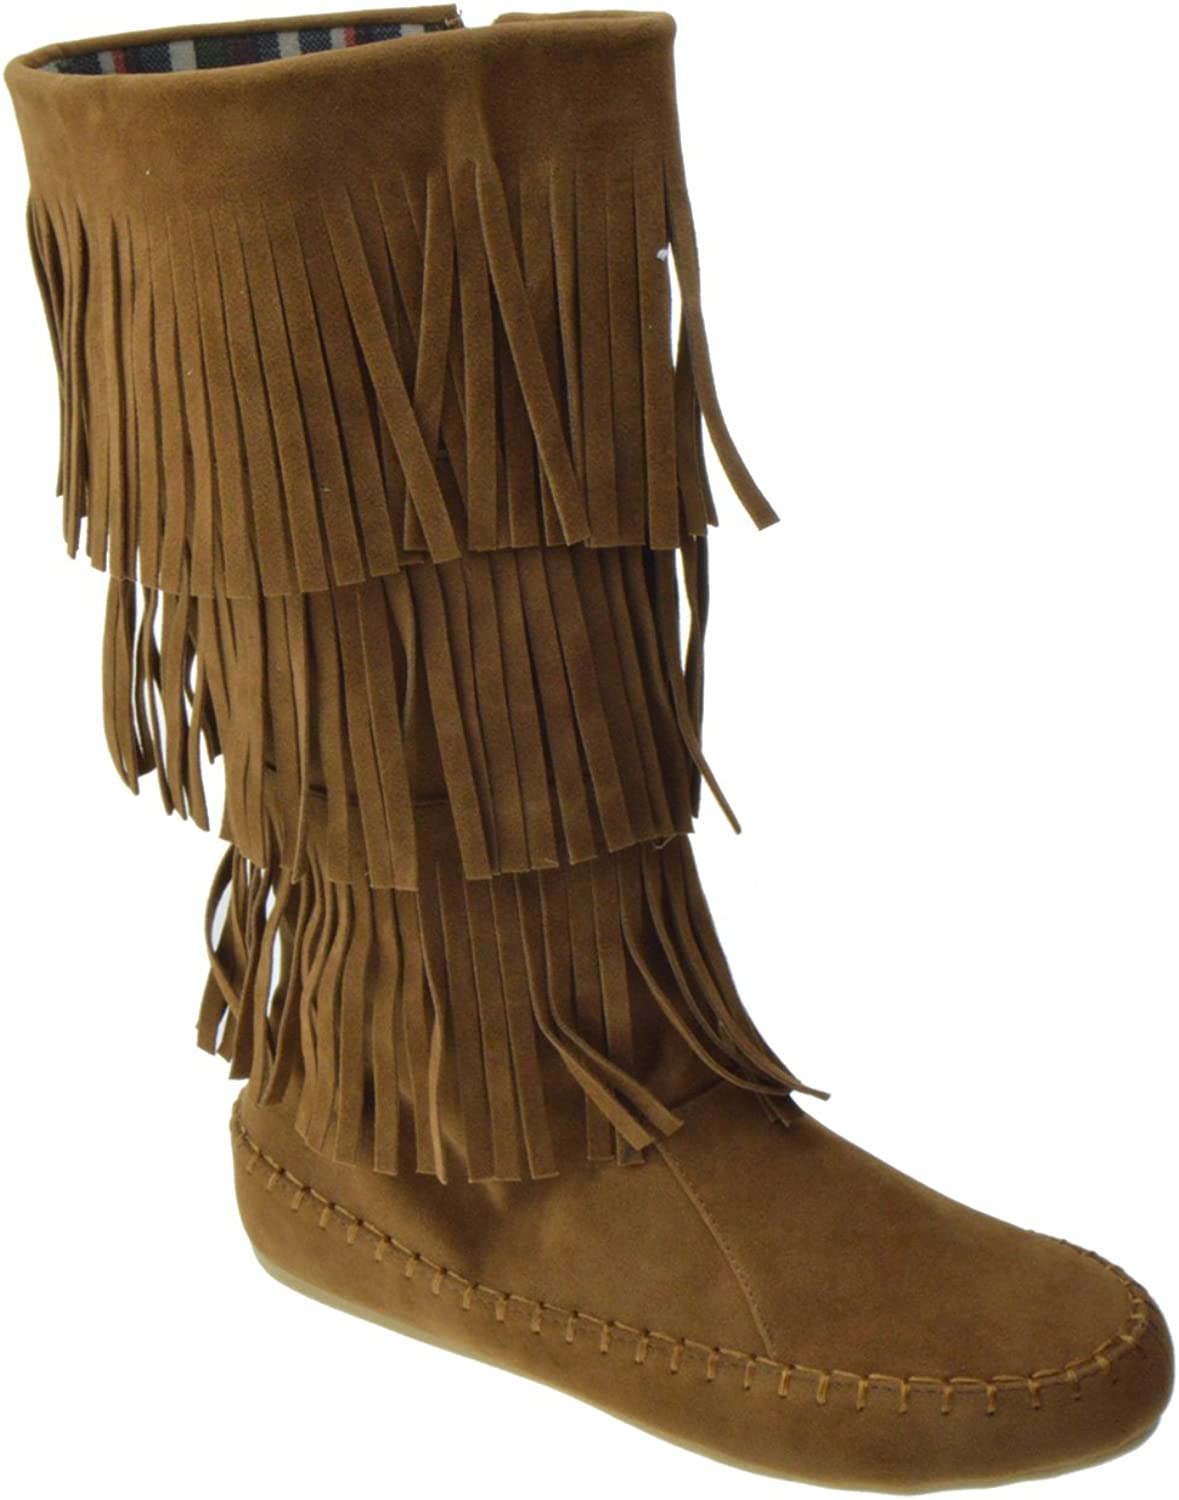 SHOEDEZIGNS TG 13 Womens 3 Layer Fringe Moccasin Mid-Calf Boots